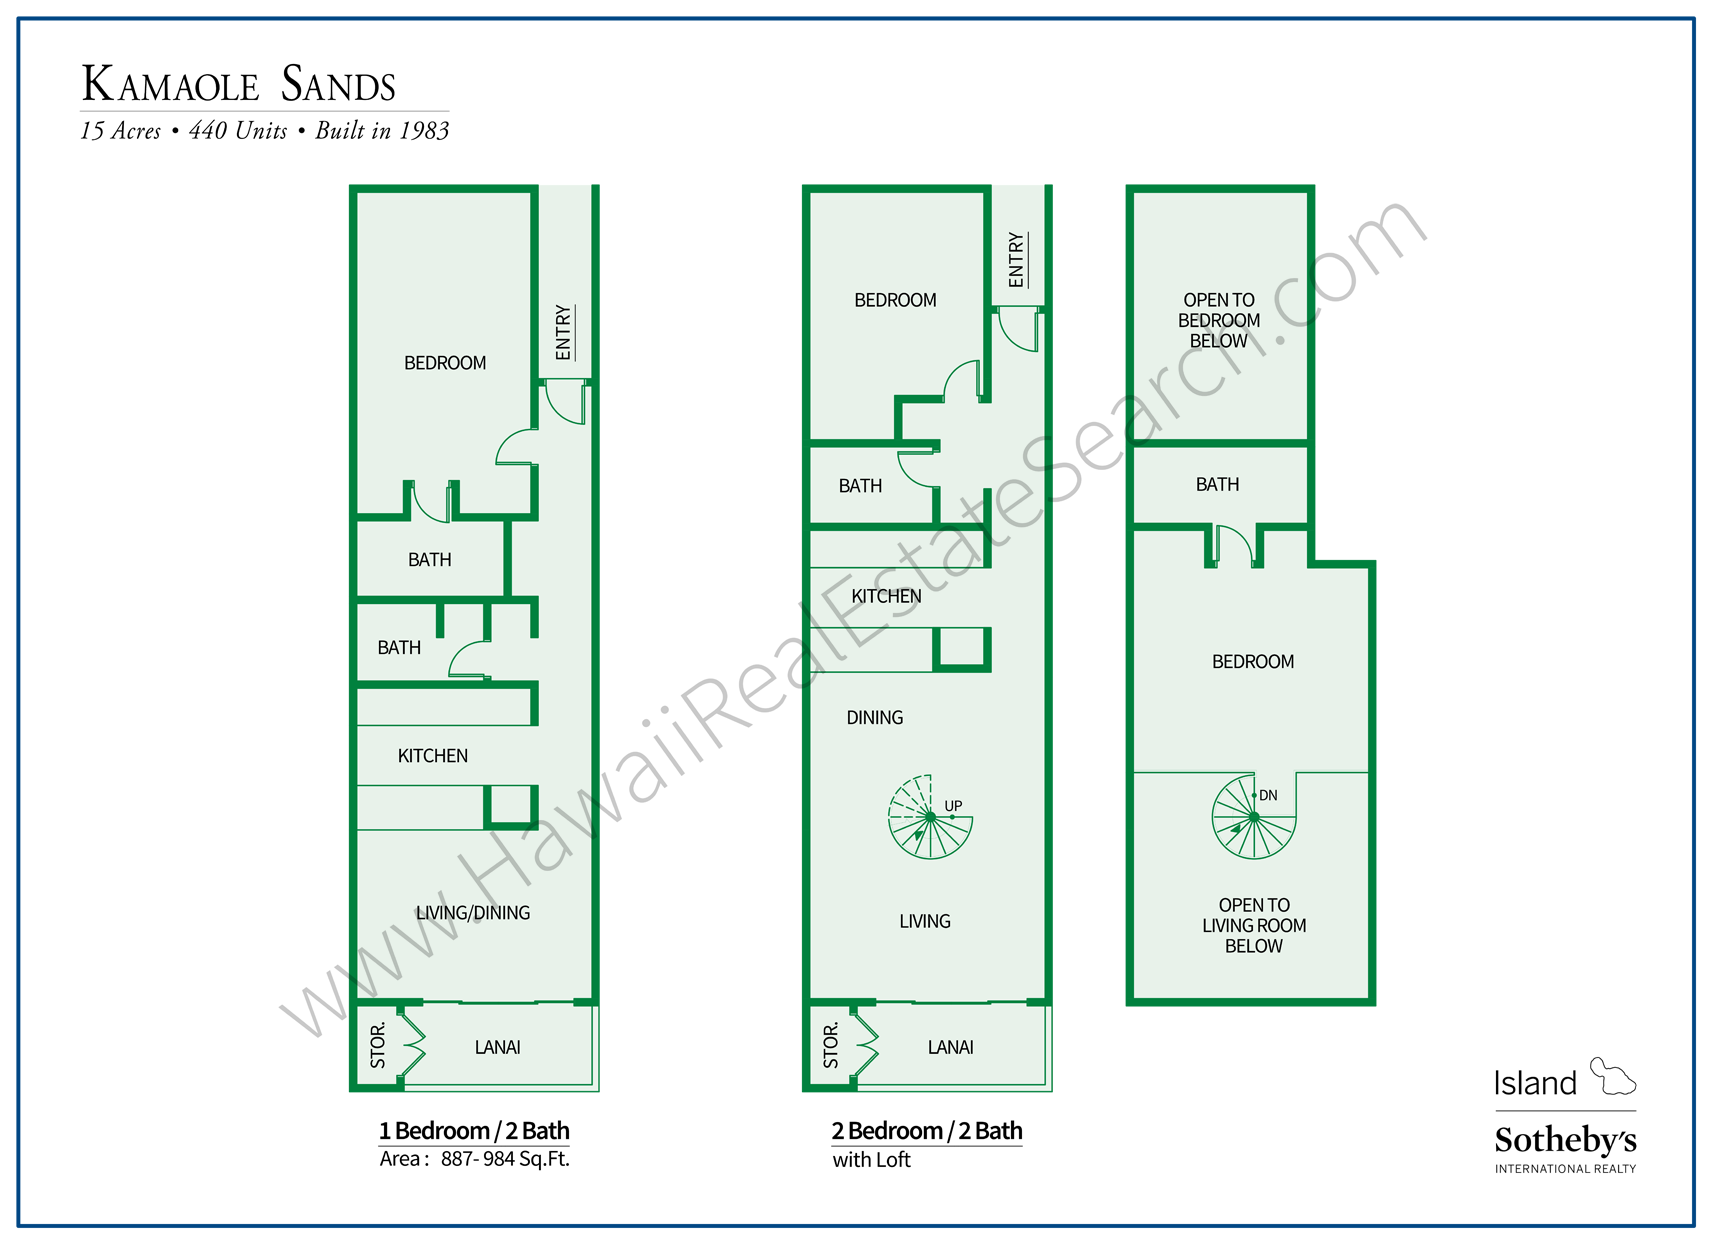 Kamaole Sands Floor Plan